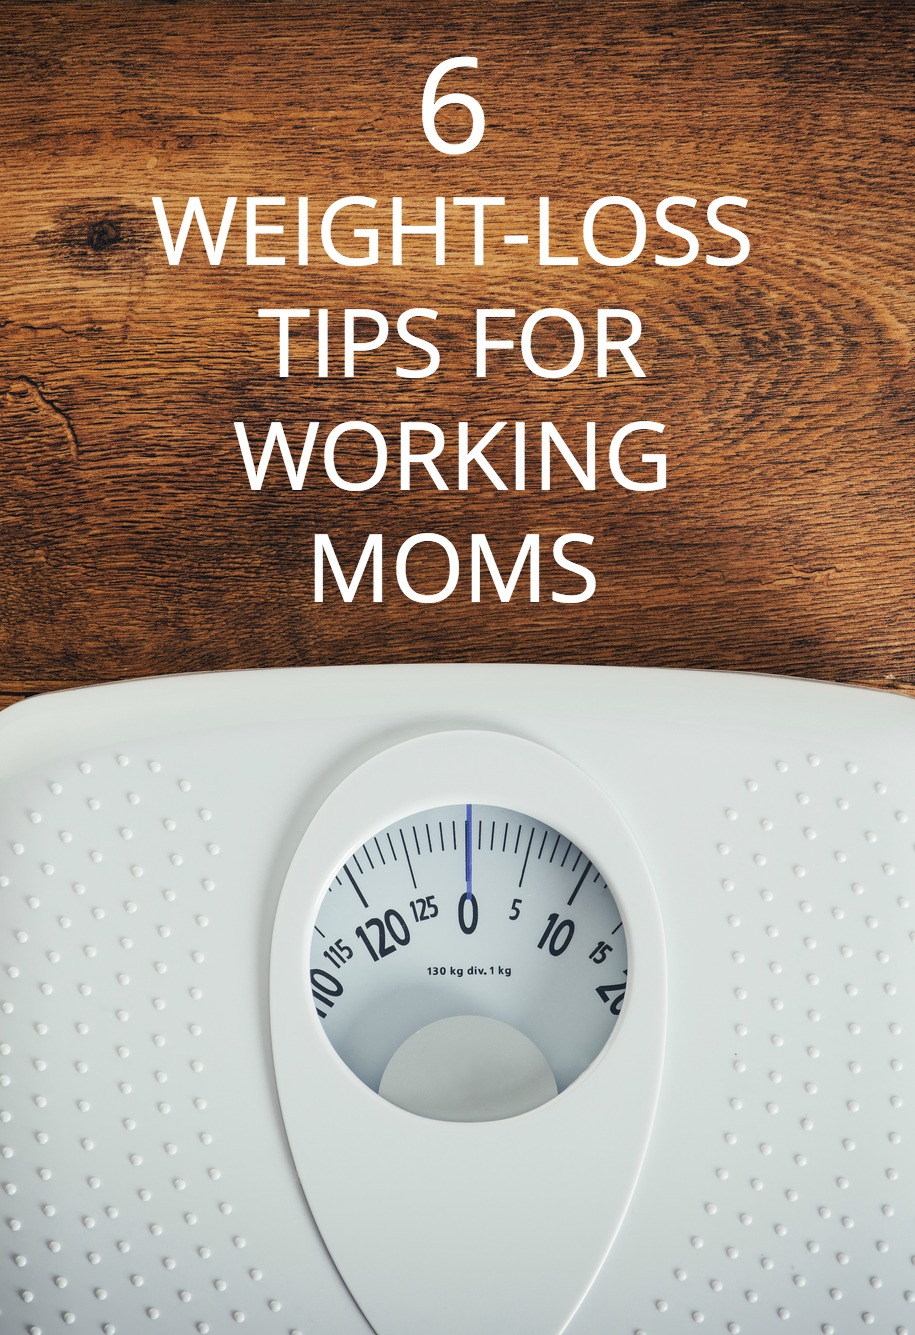 Ready to make THIS the year you achieve your new year's weight loss resolution? Tips from a working mom on making it happen.